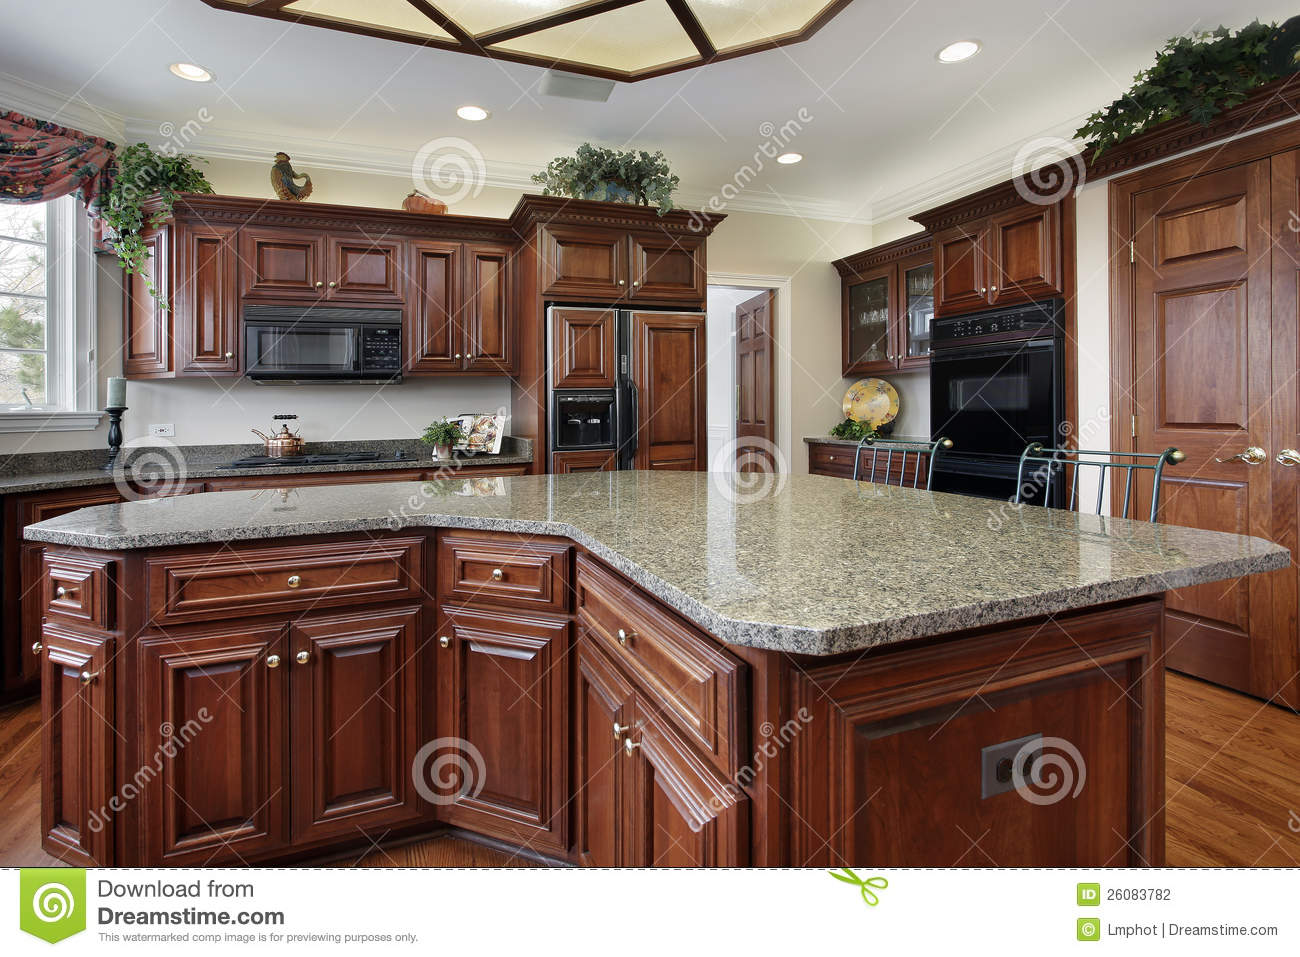 kitchen centre island kitchen with large center island stock photo image 26083782 12987